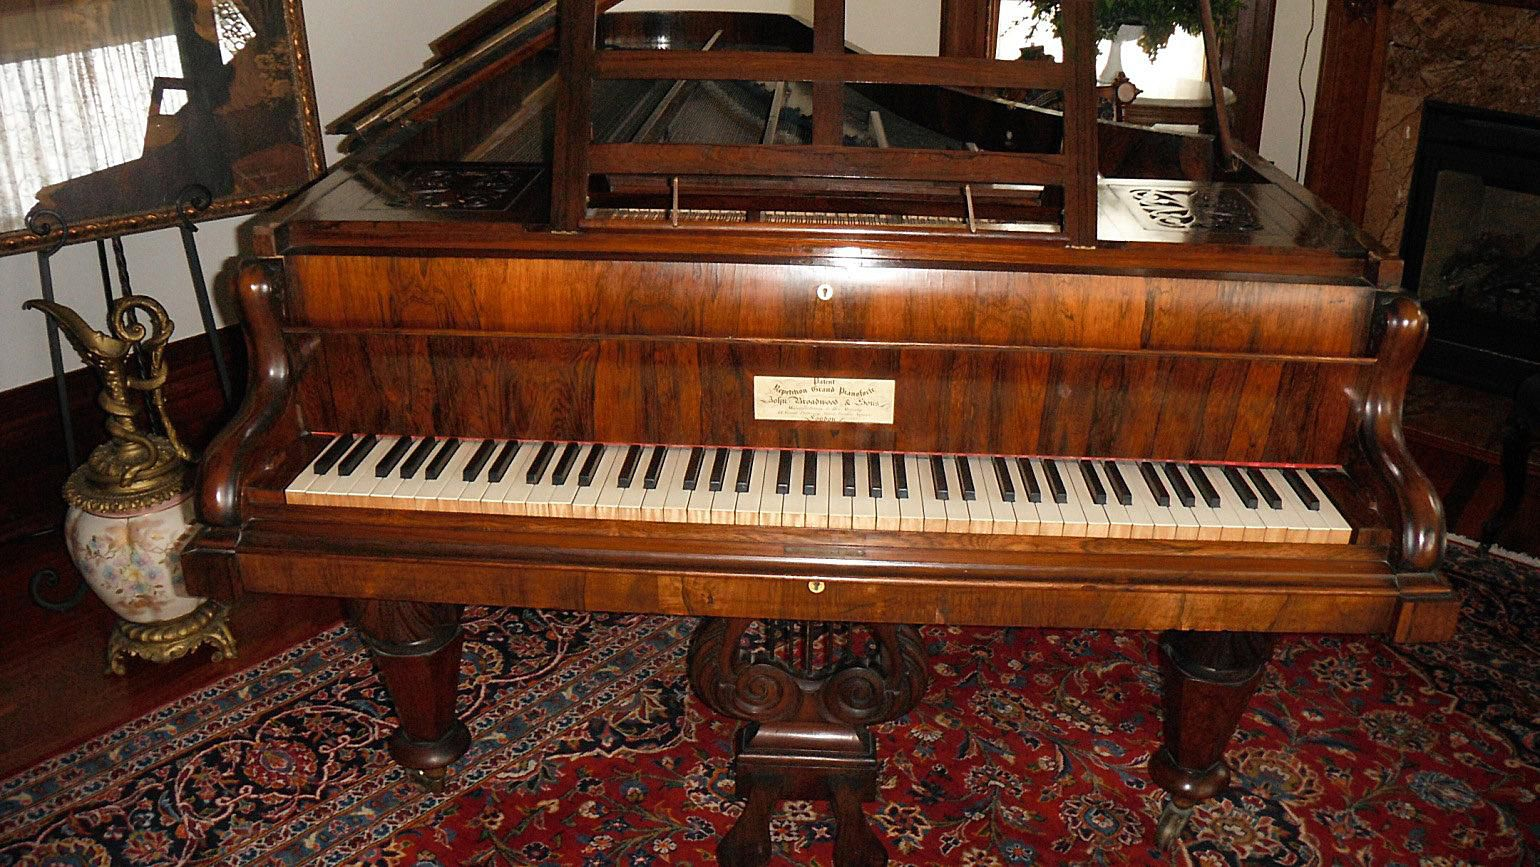 Is It a Piano, a Pianoforte or a Harpsichord?